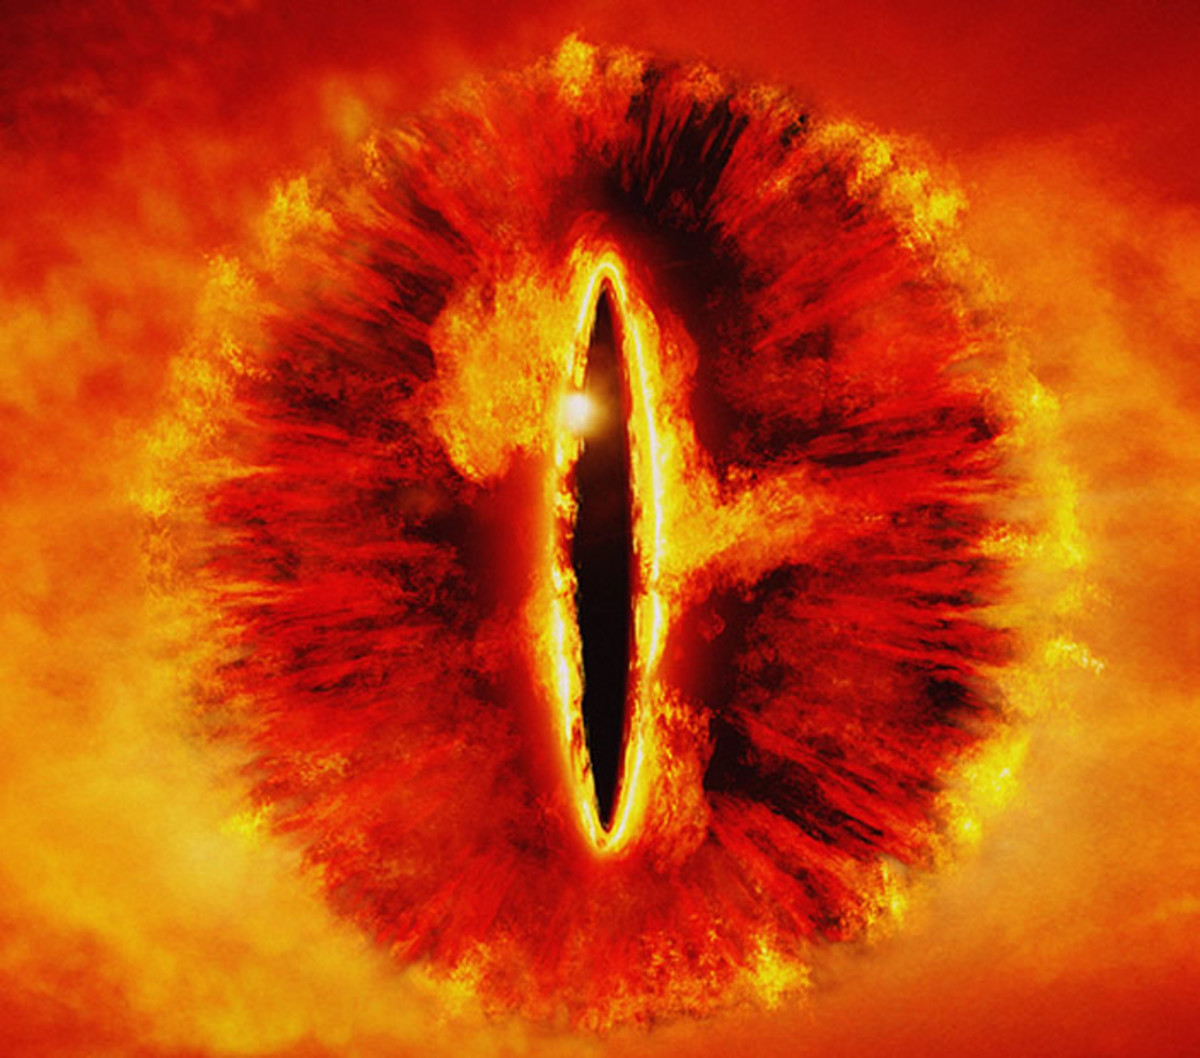 The Eye of Sauron as seen in the Lord of the Rings.